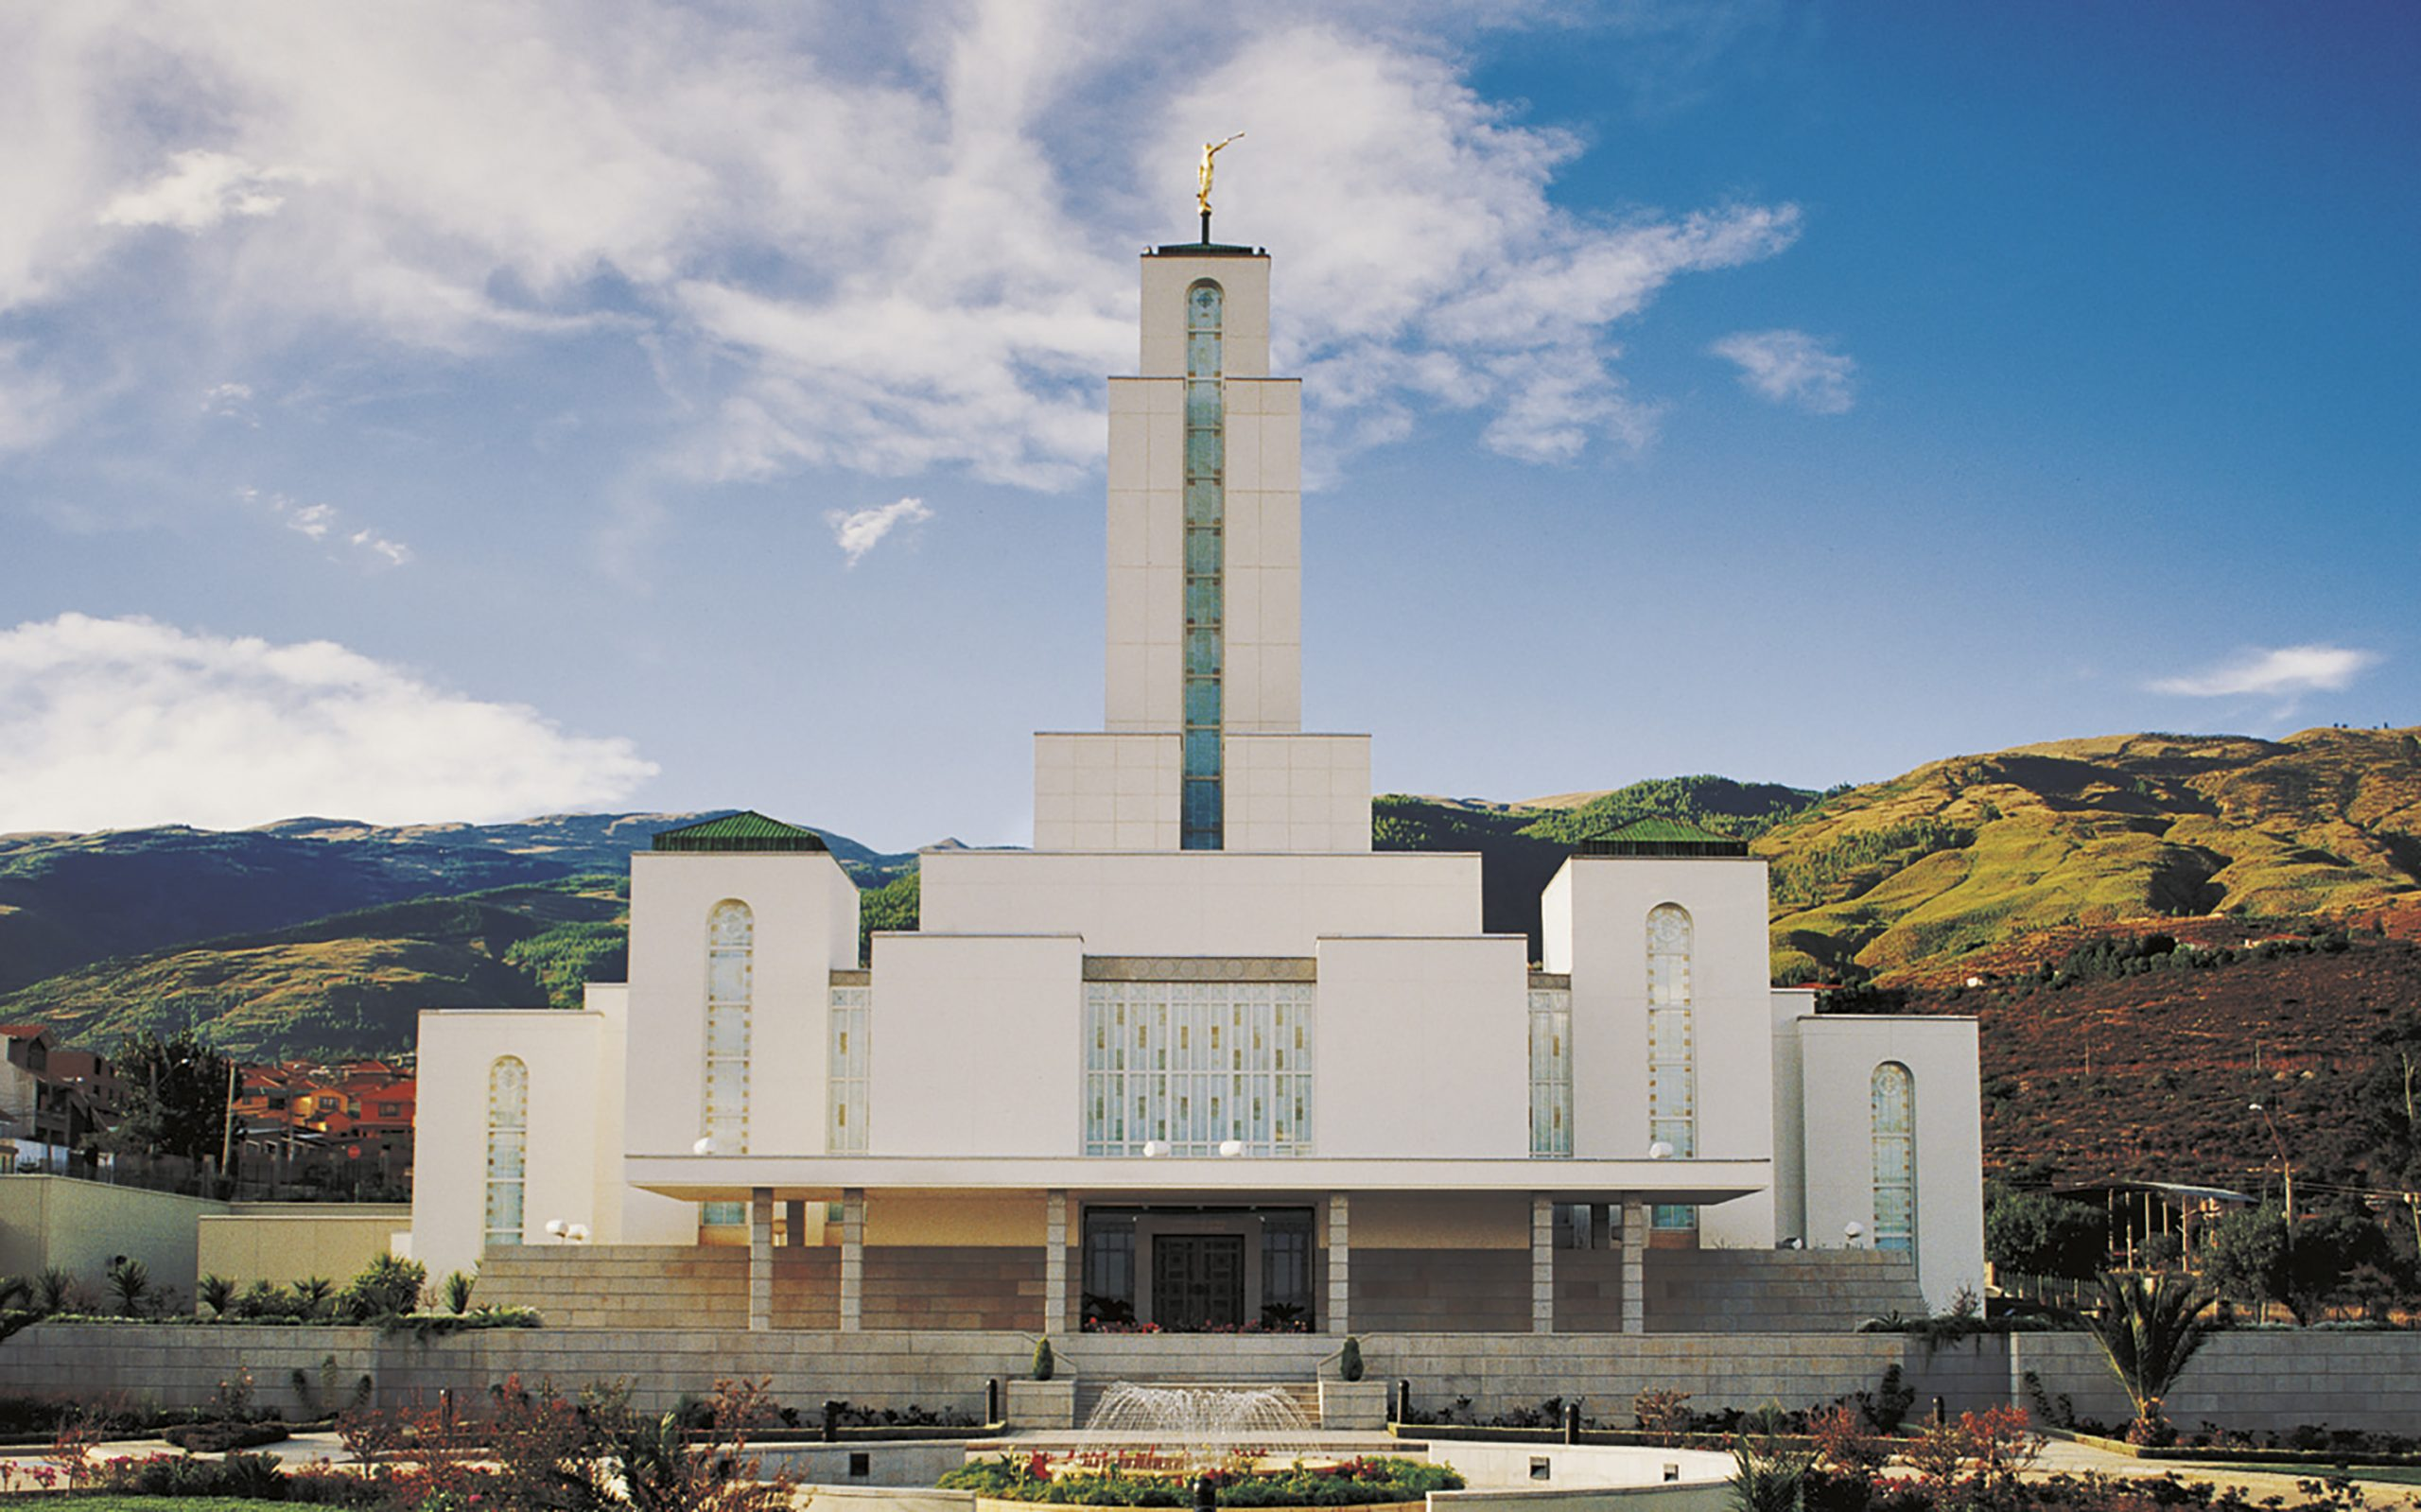 The Cochabamba Bolivia Temple of The Church of Jesus Christ of Latter-day Saints | Intellectual Reserve